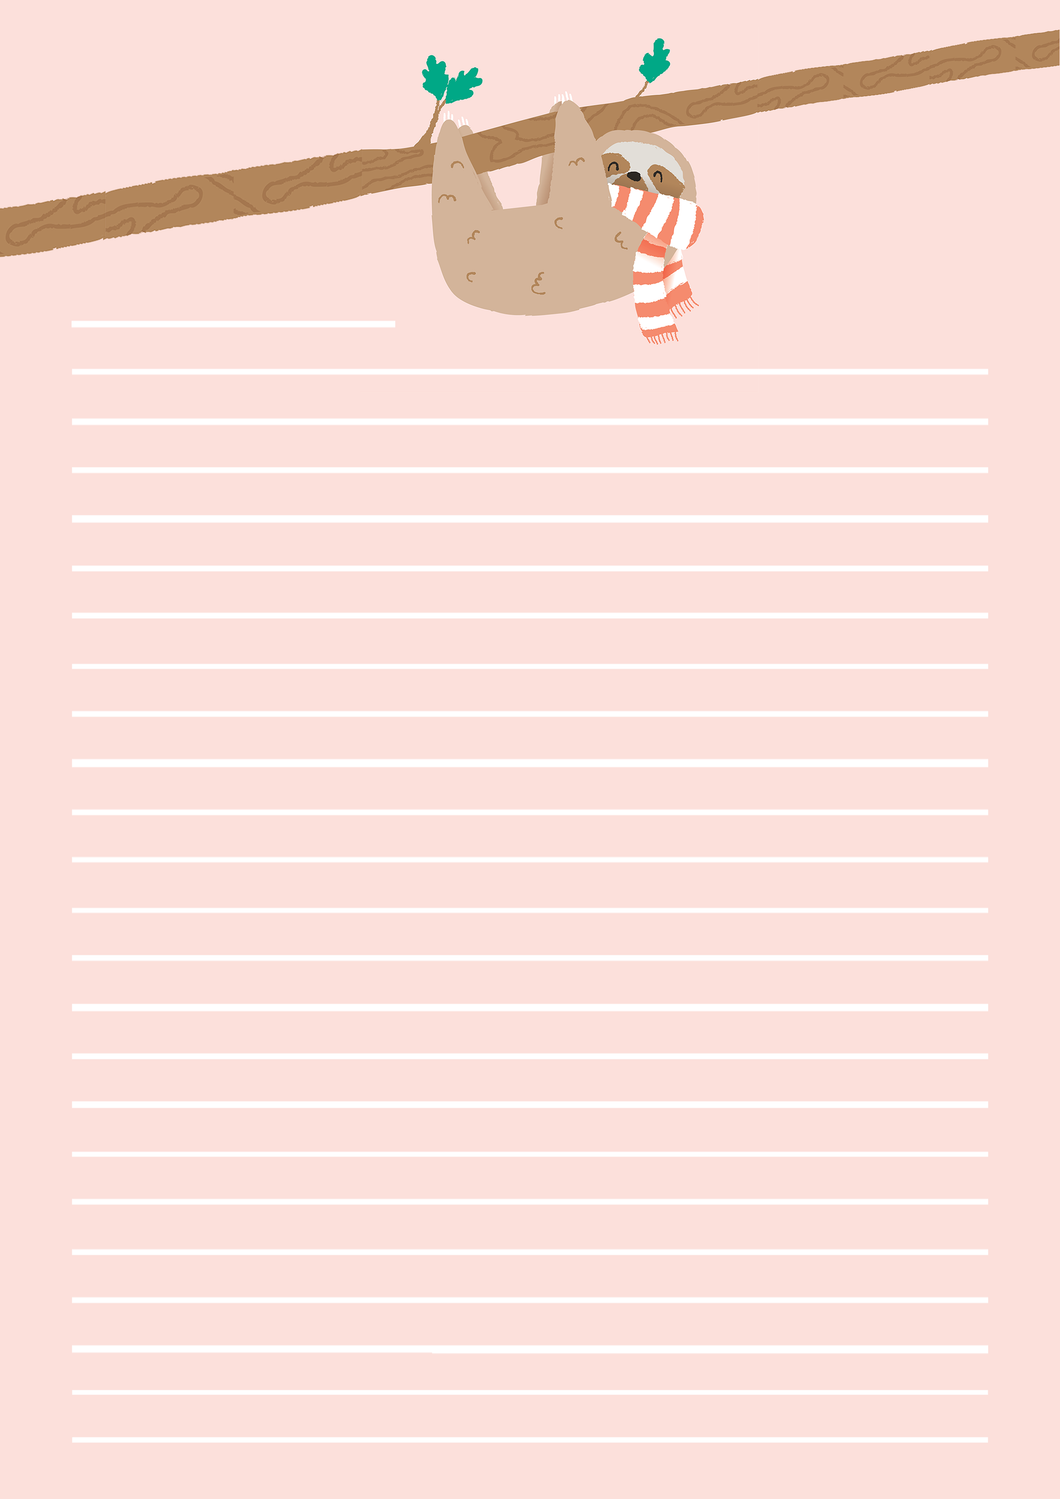 letter size paper printable letter paper stationery instant a4 23144 | a4 SIZE SLOTH PAPPER 530x@2x